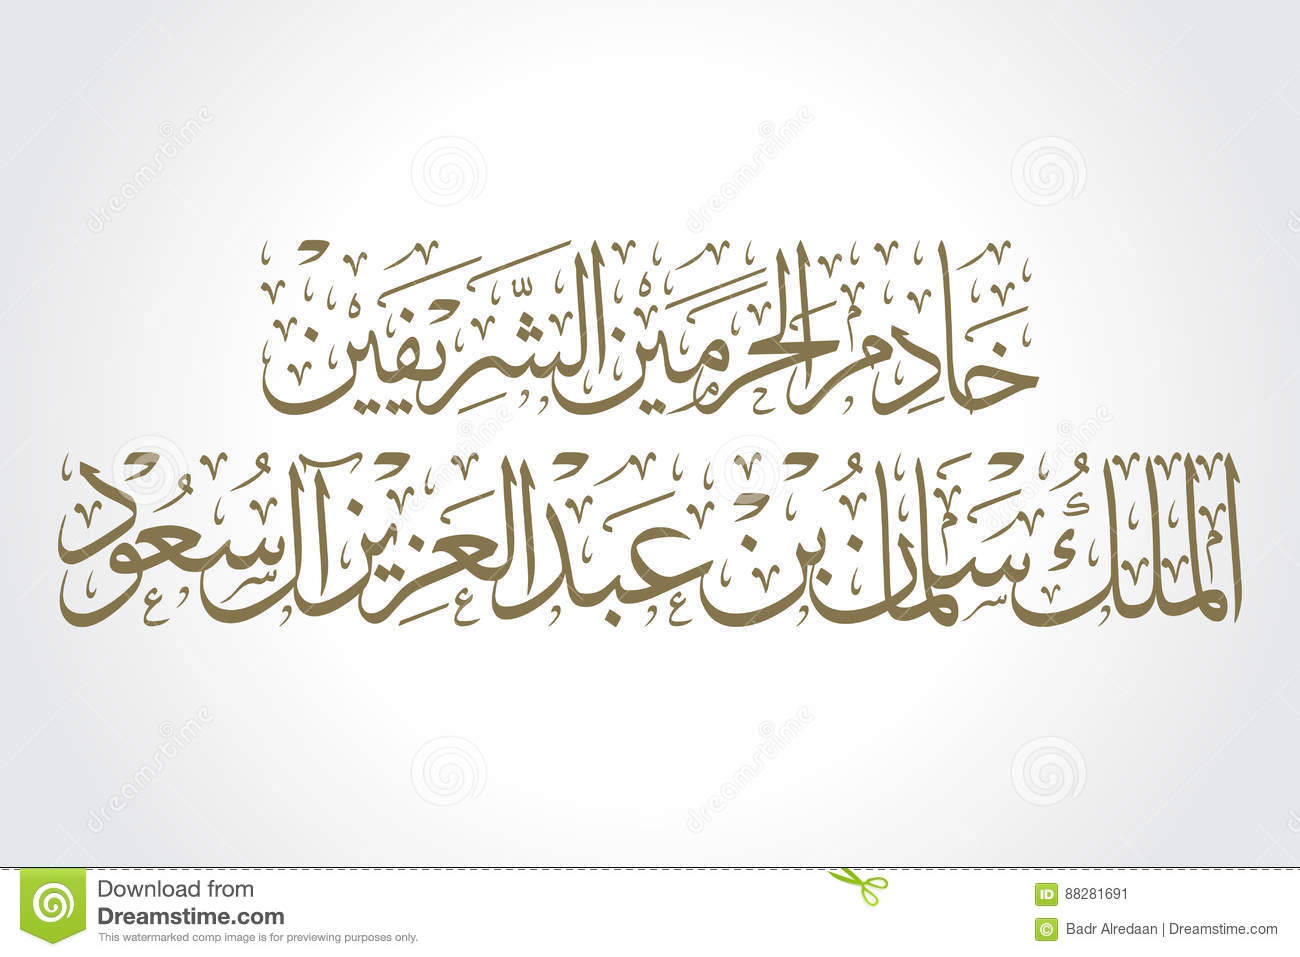 Calligraphy king salman bin abdulaziz al saud the of